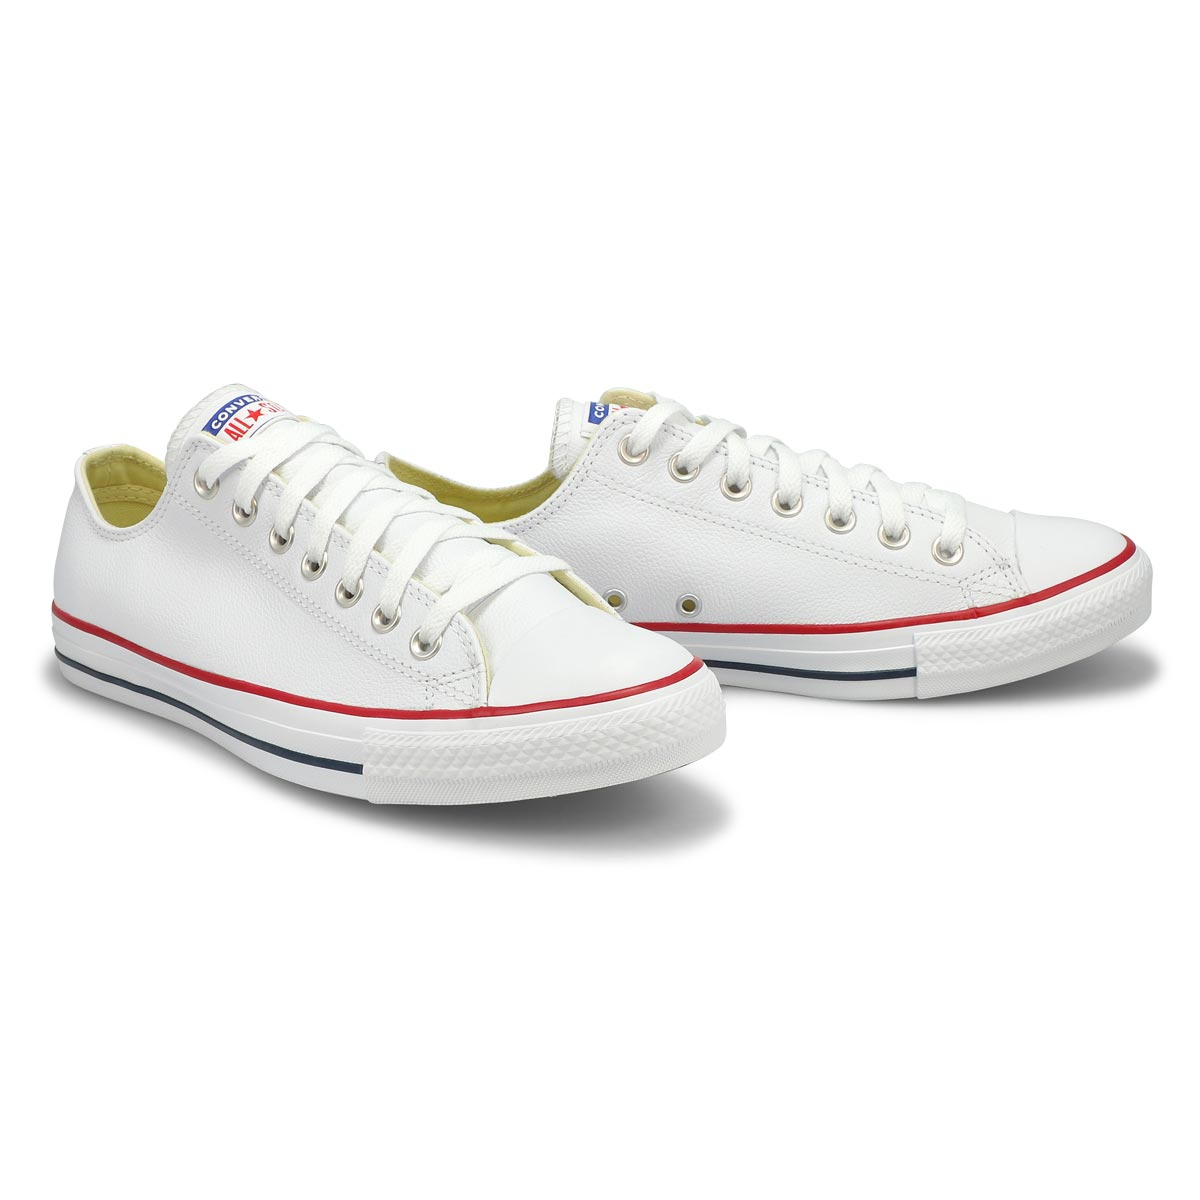 Mns CT All Star Leather Ox wht sneaker